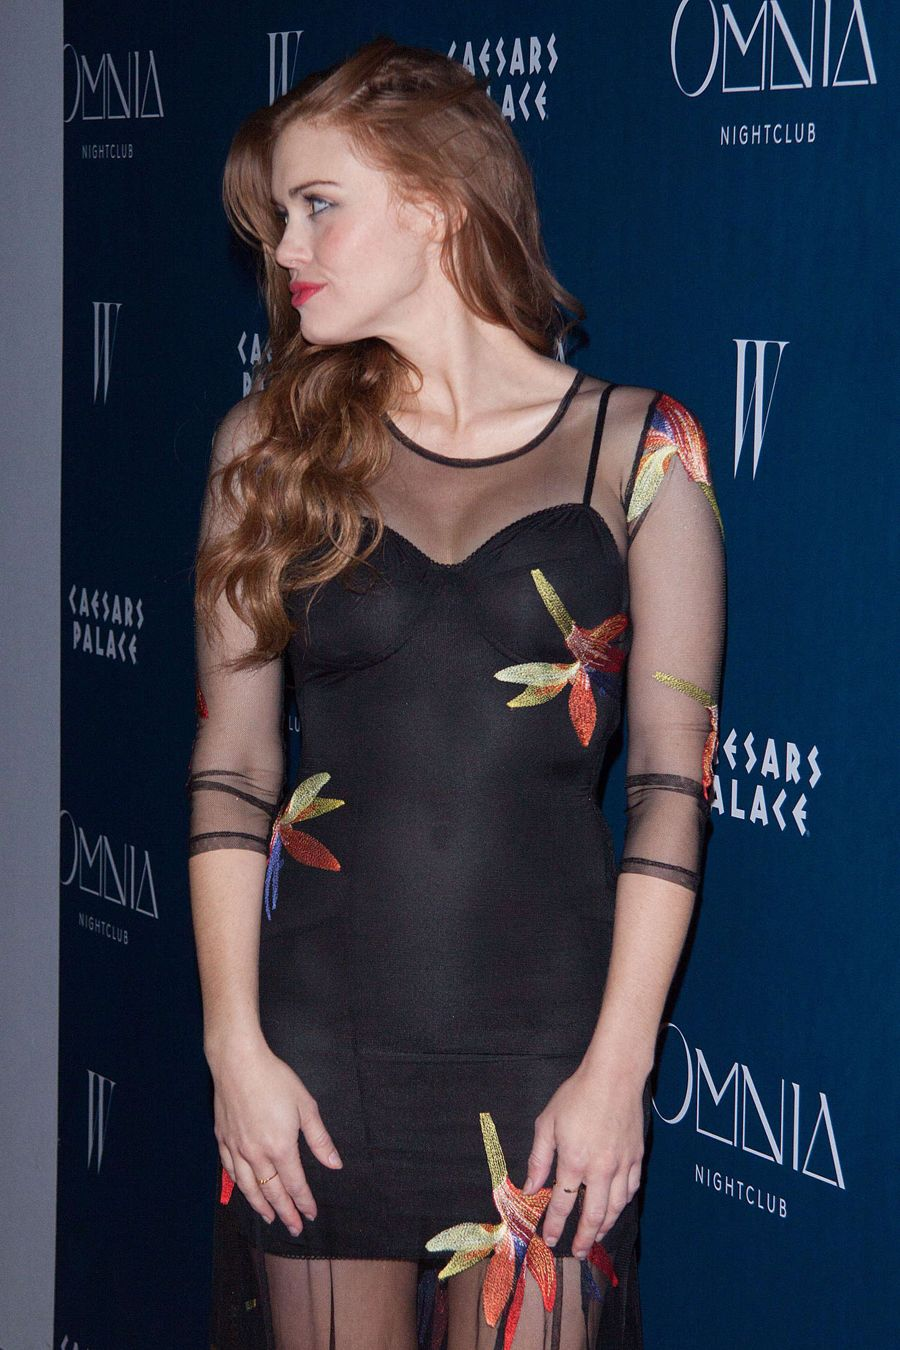 Holland Roden - Omnia Nightclub At Caesars Palace